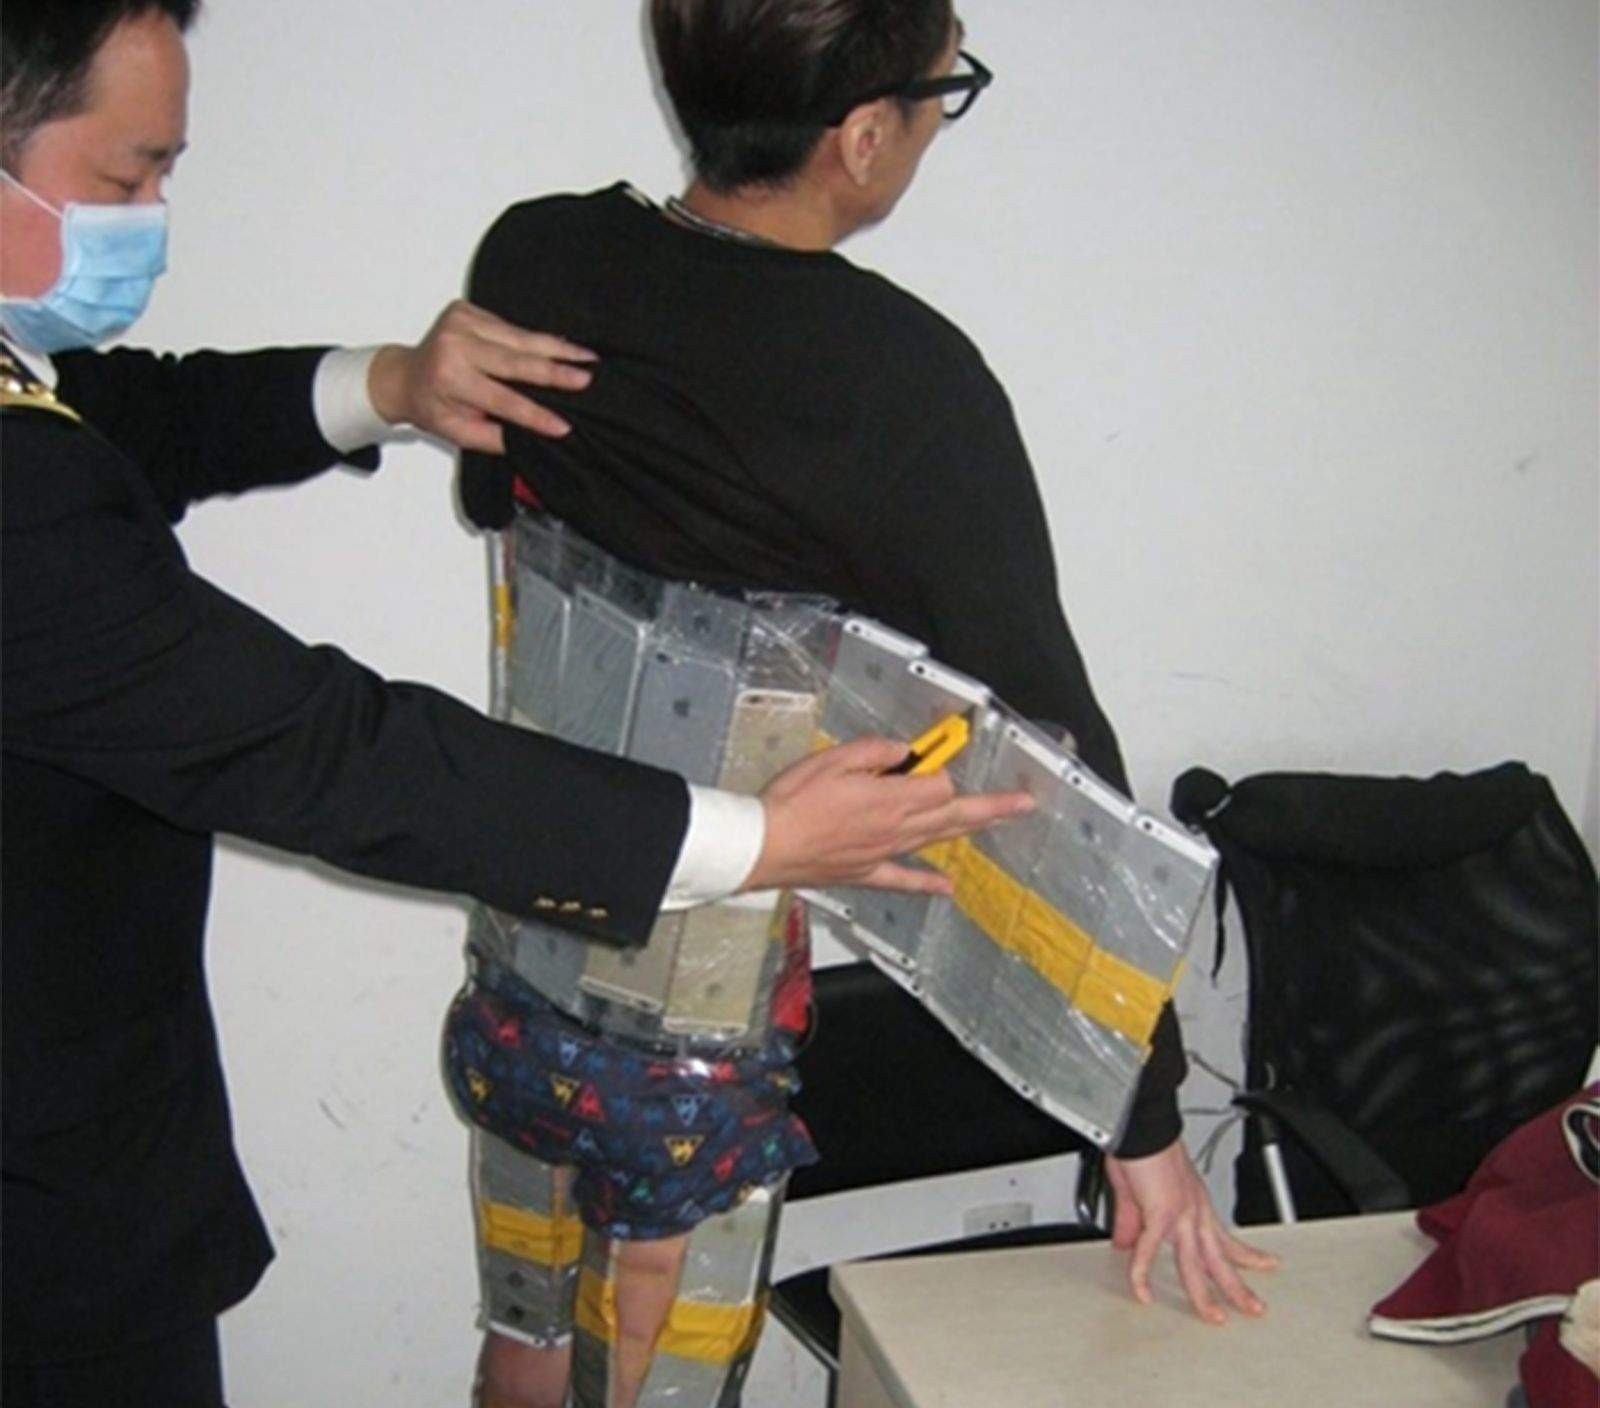 Customs officials in China caught this man trying to smuggle 94 iPhones into the country. Photo: Sina News